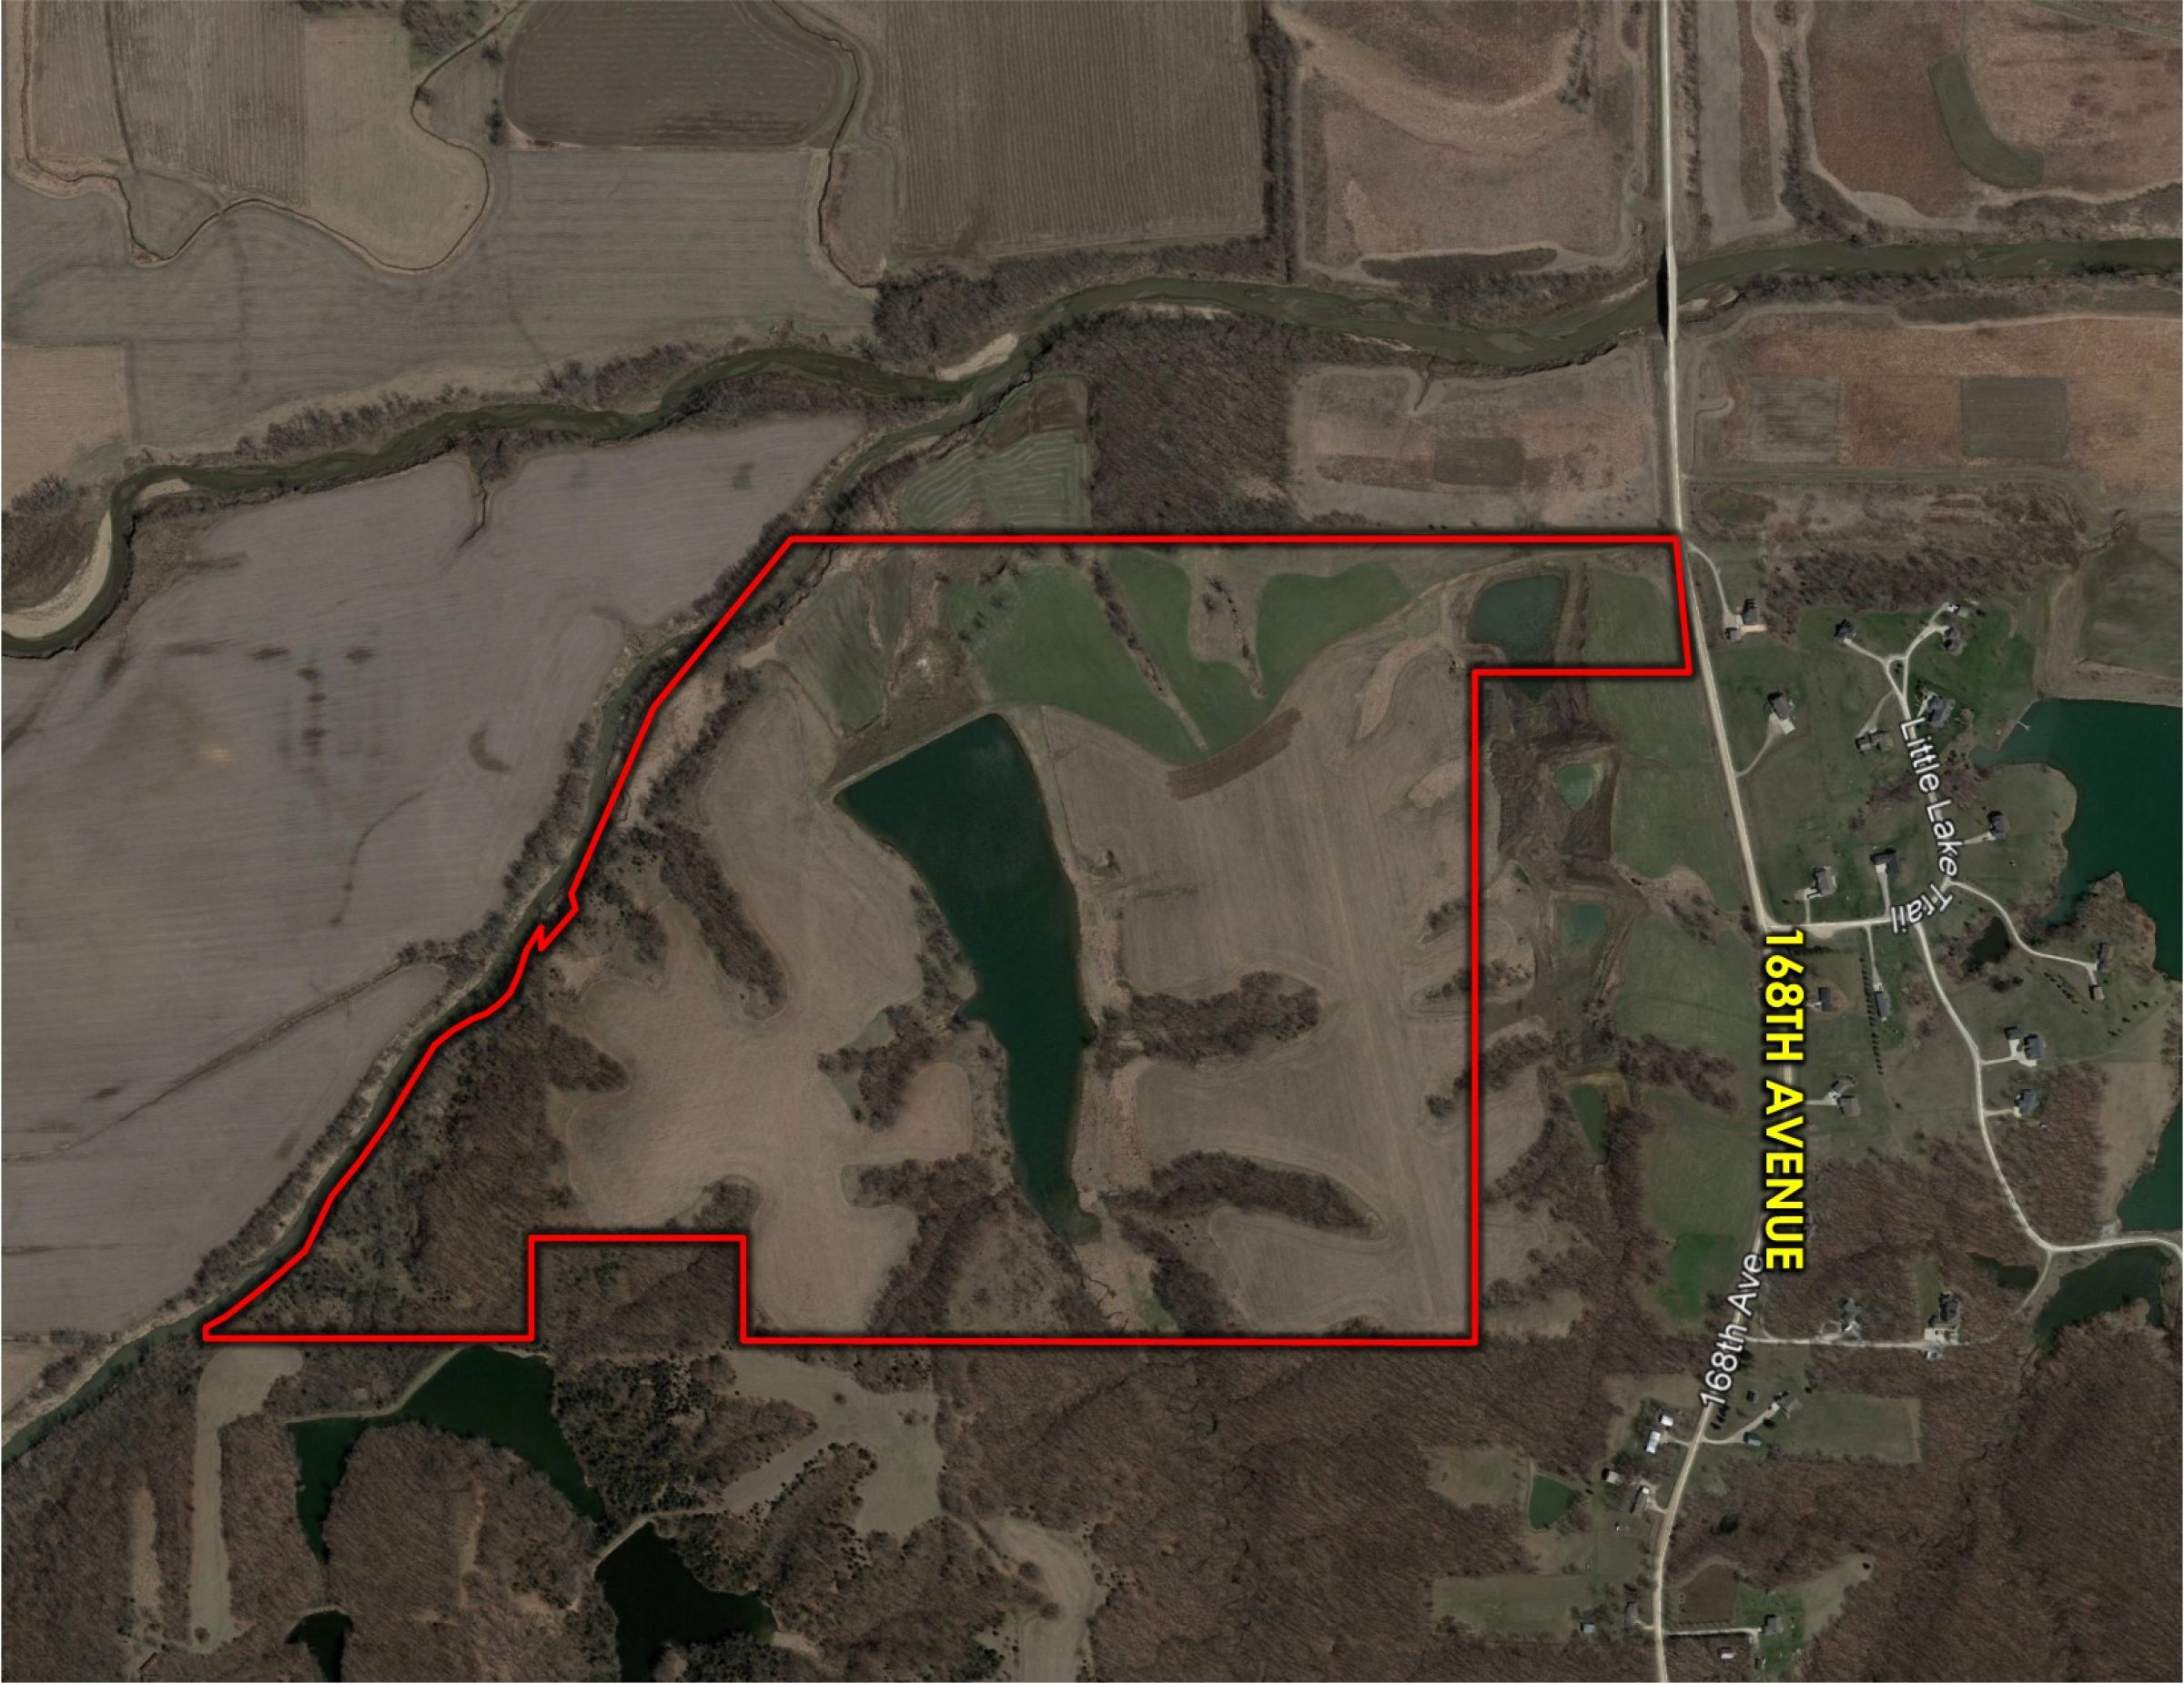 Peoples Company Land for Sale in Warren County, Iowa - 205 acres - 168th Ave. Indianola, IA 50125 - 14501